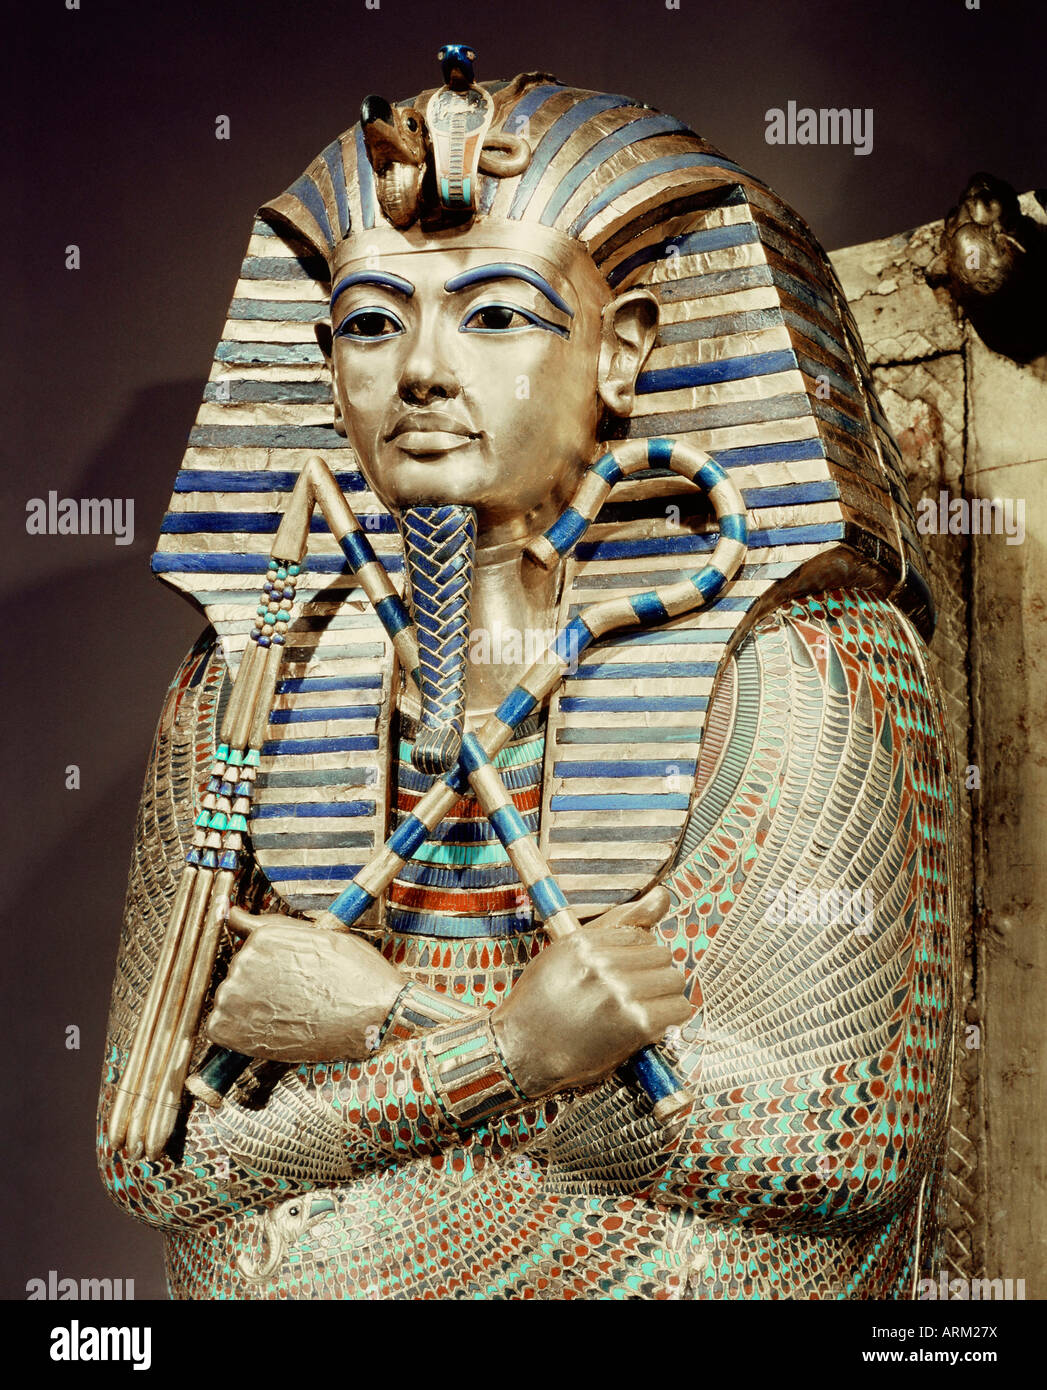 Detail of the second mummiform coffin, from the tomb of the pharaoh Tutankhamun - Stock Image